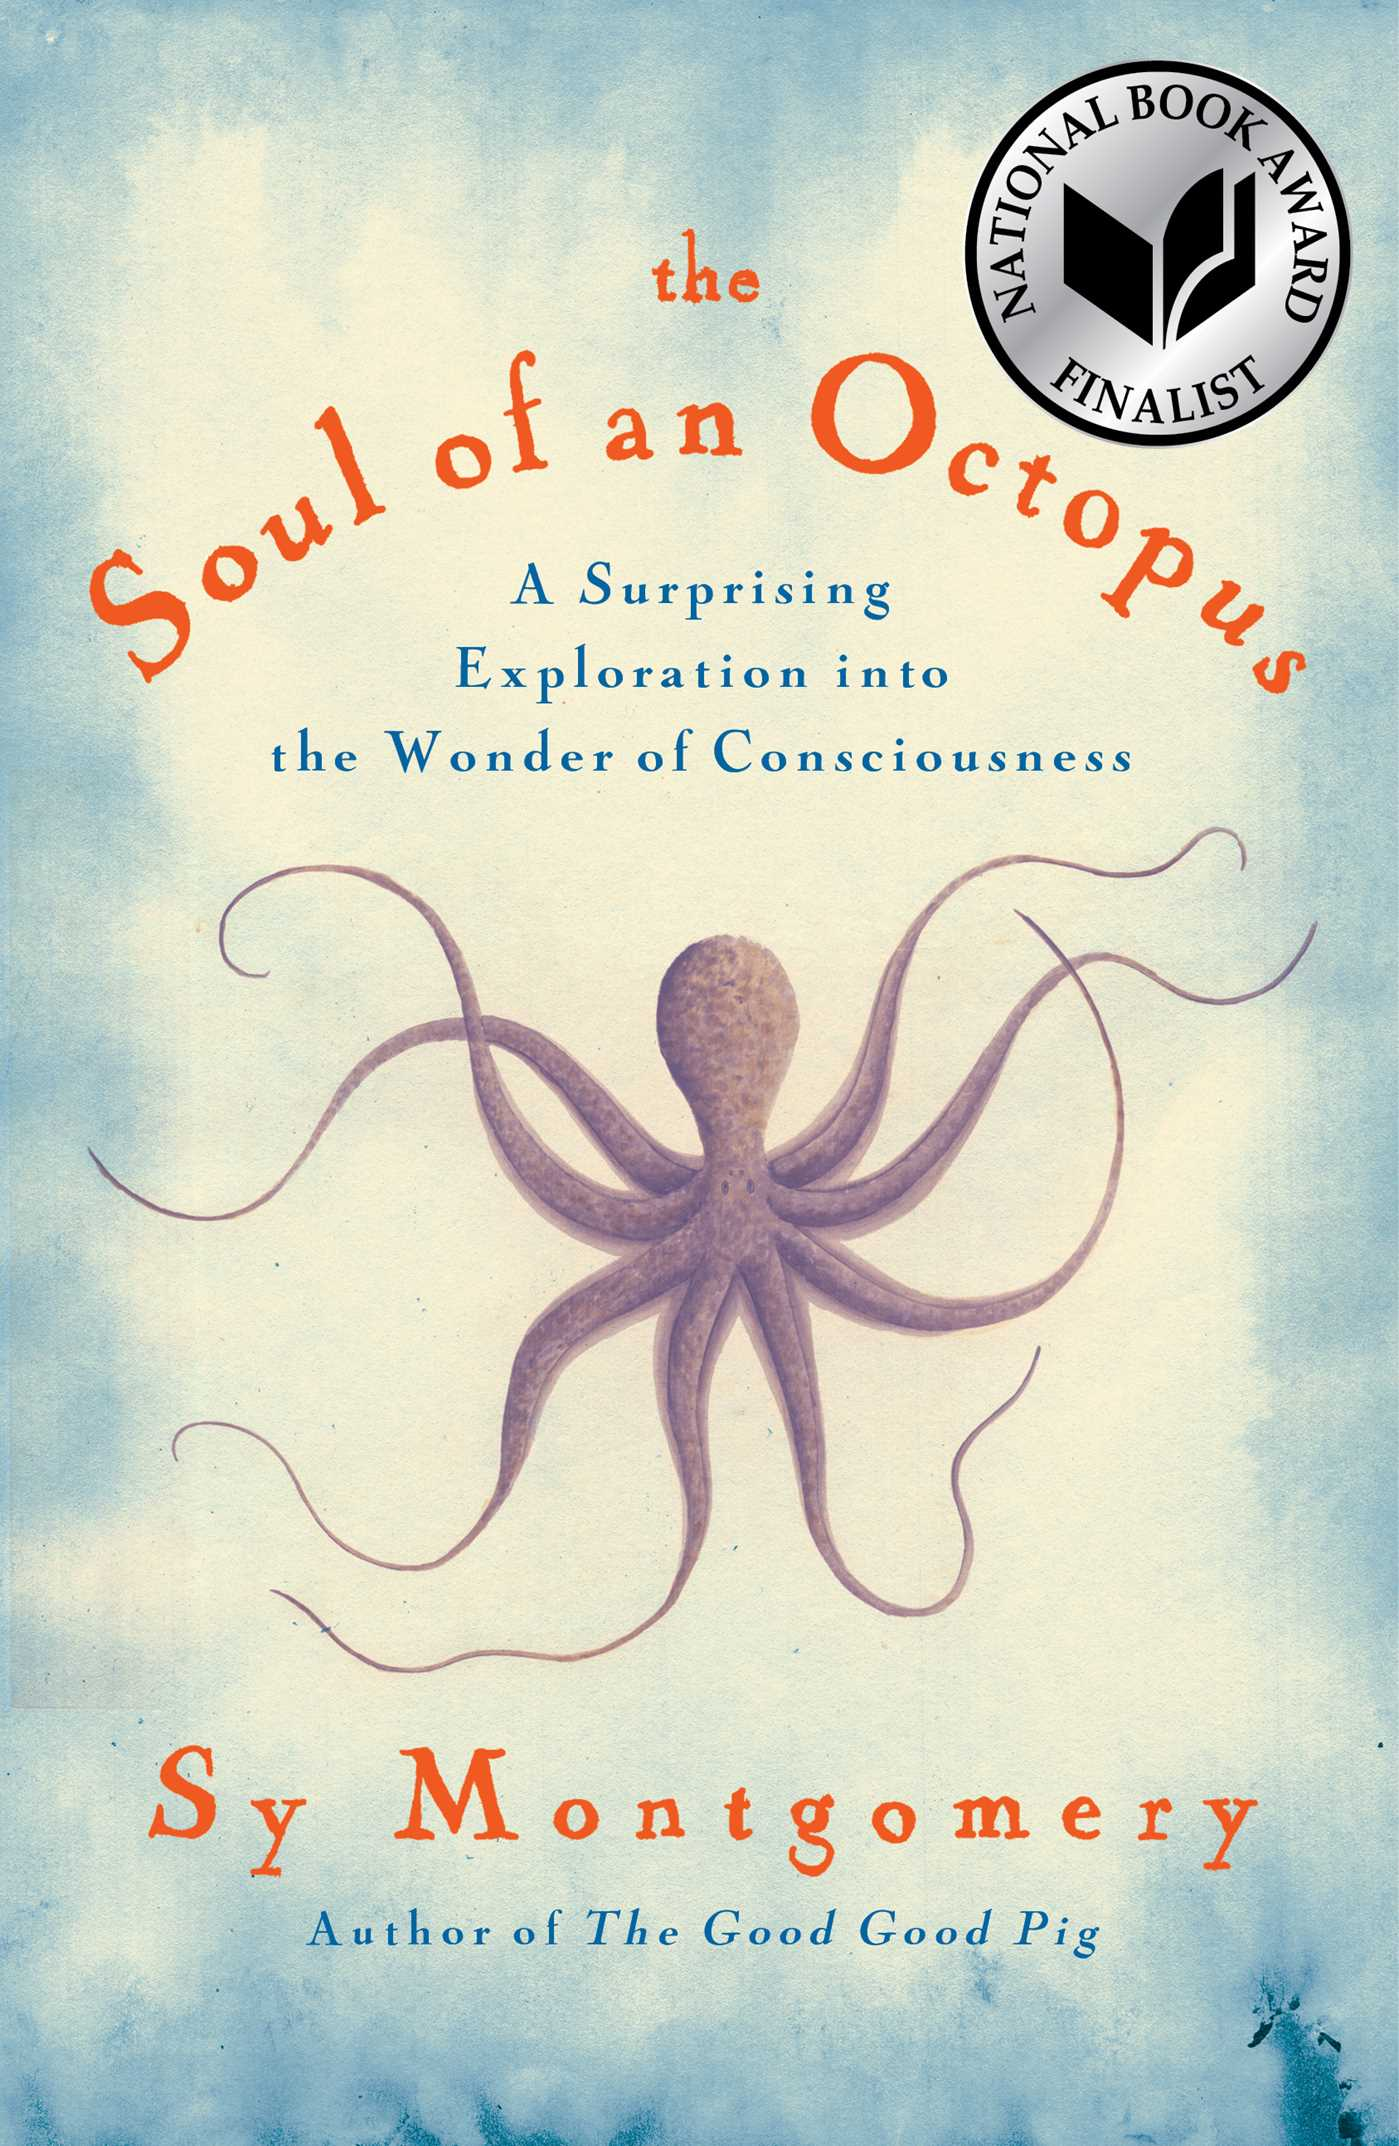 The soul of an octopus 9781451697711 hr